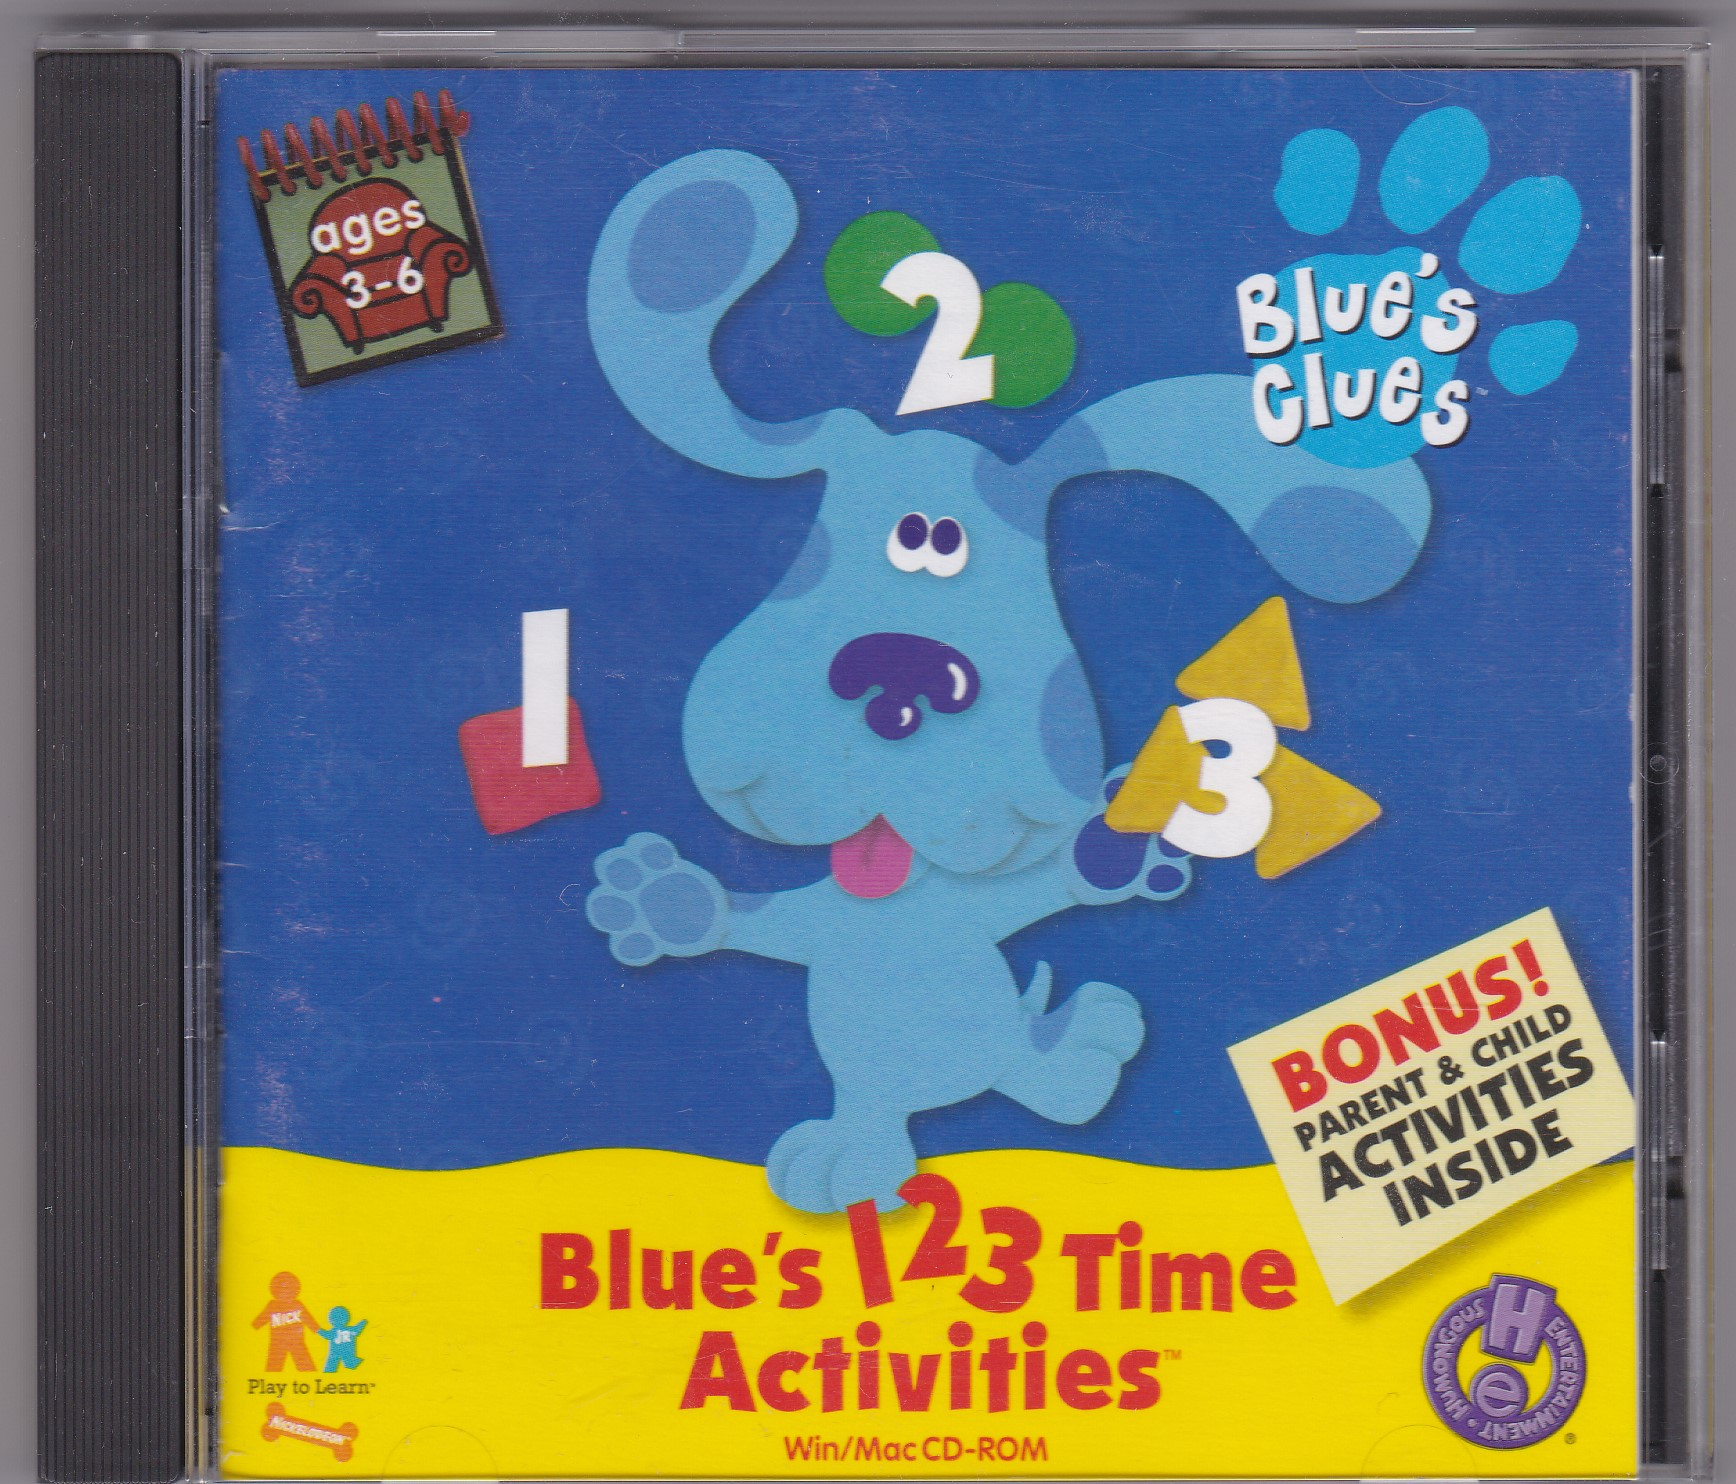 Blue's 123 Time Activities/Gallery